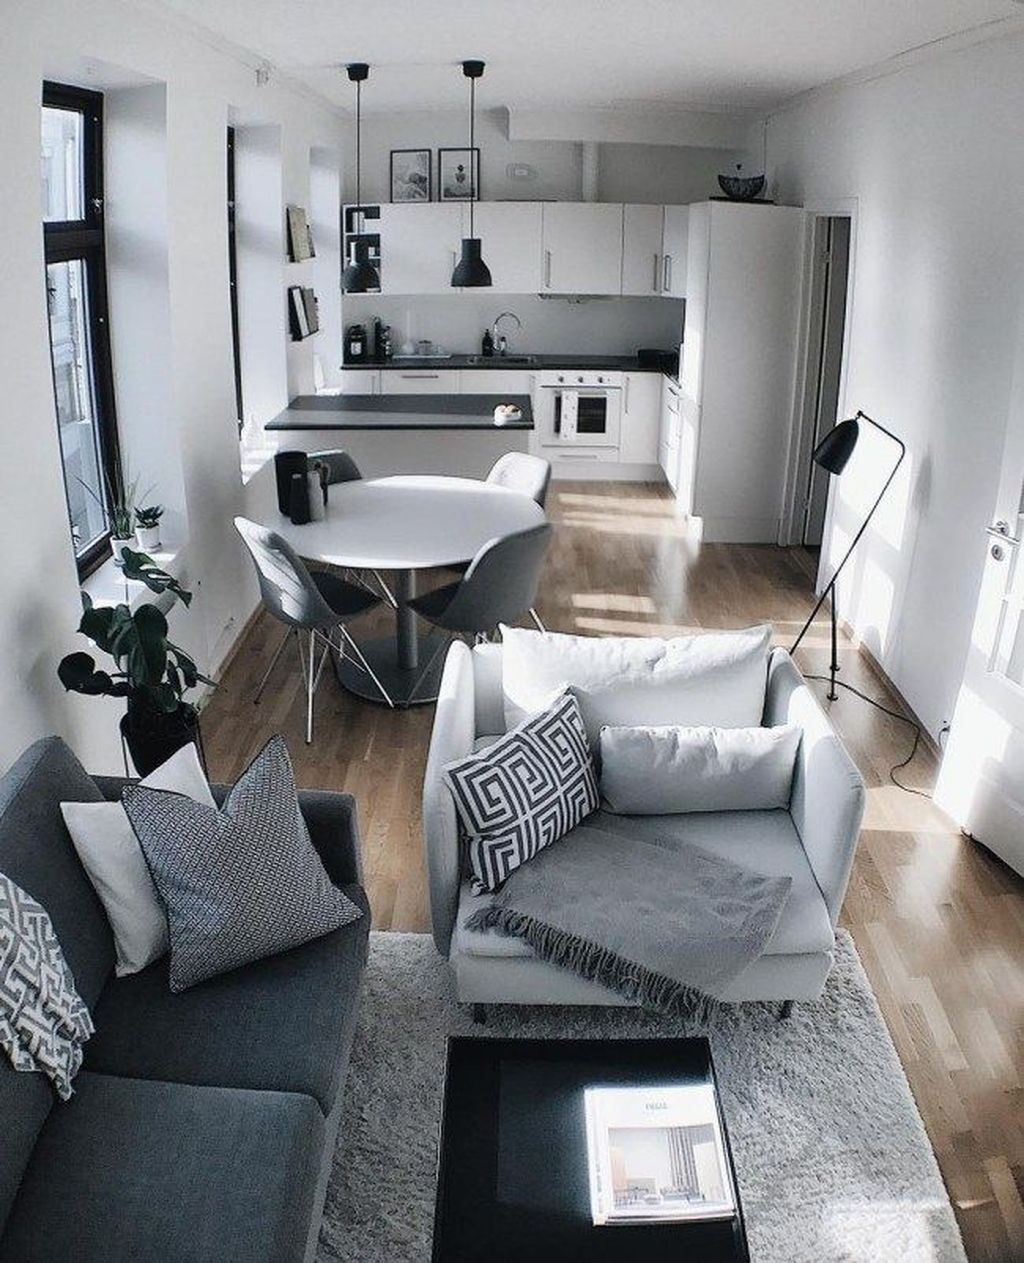 Admirable Apartment Decorating Ideas You Will Love 04